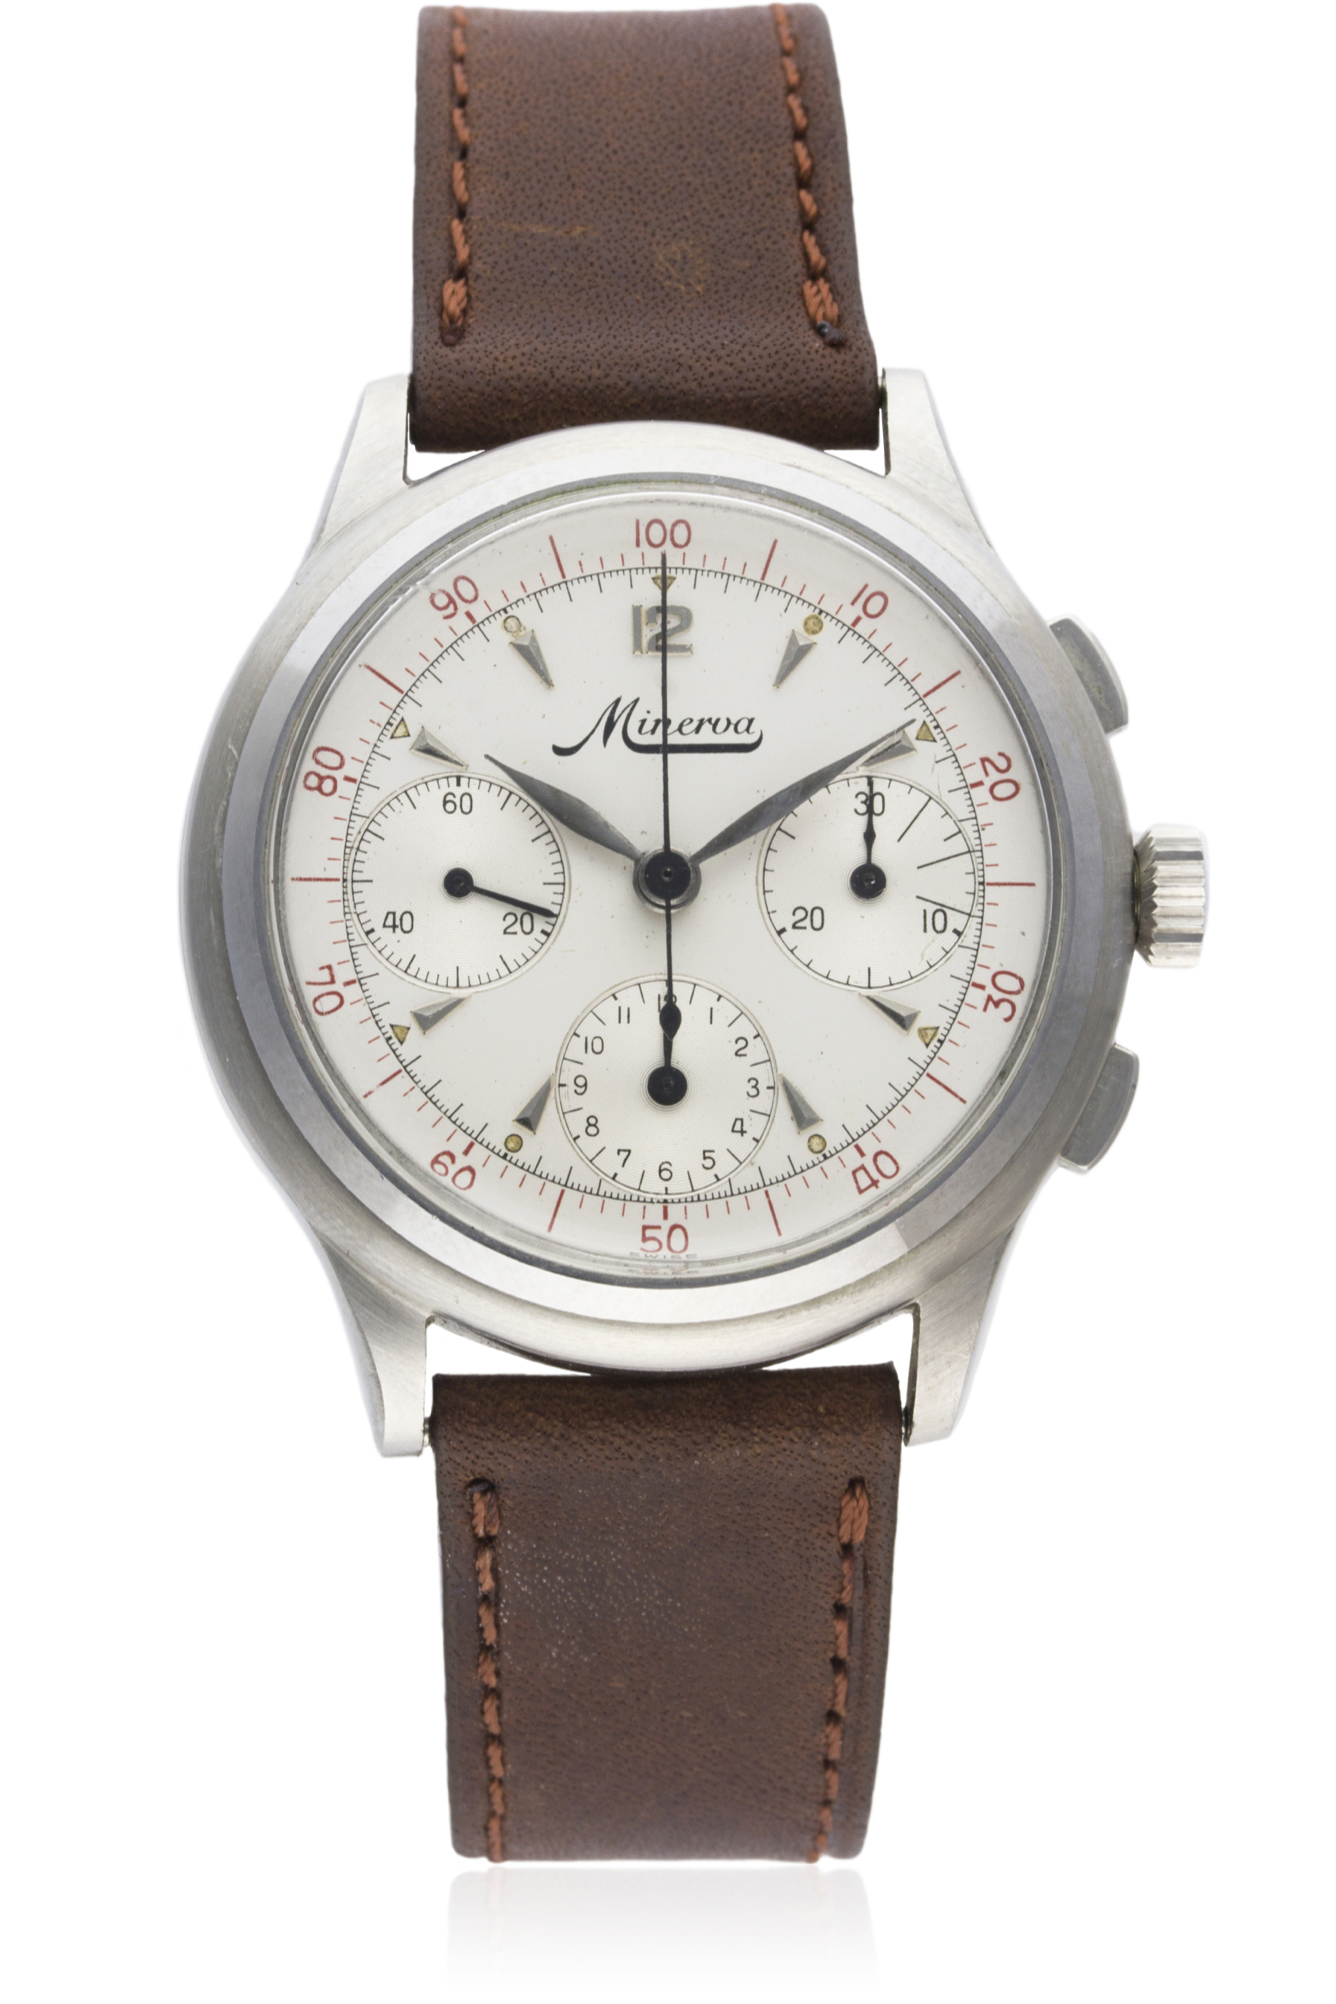 A RARE GENTLEMAN'S STAINLESS STEEL MINERVA DECIMAL CHRONOGRAPH WRIST WATCH CIRCA 1950s D: Silver - Image 2 of 9